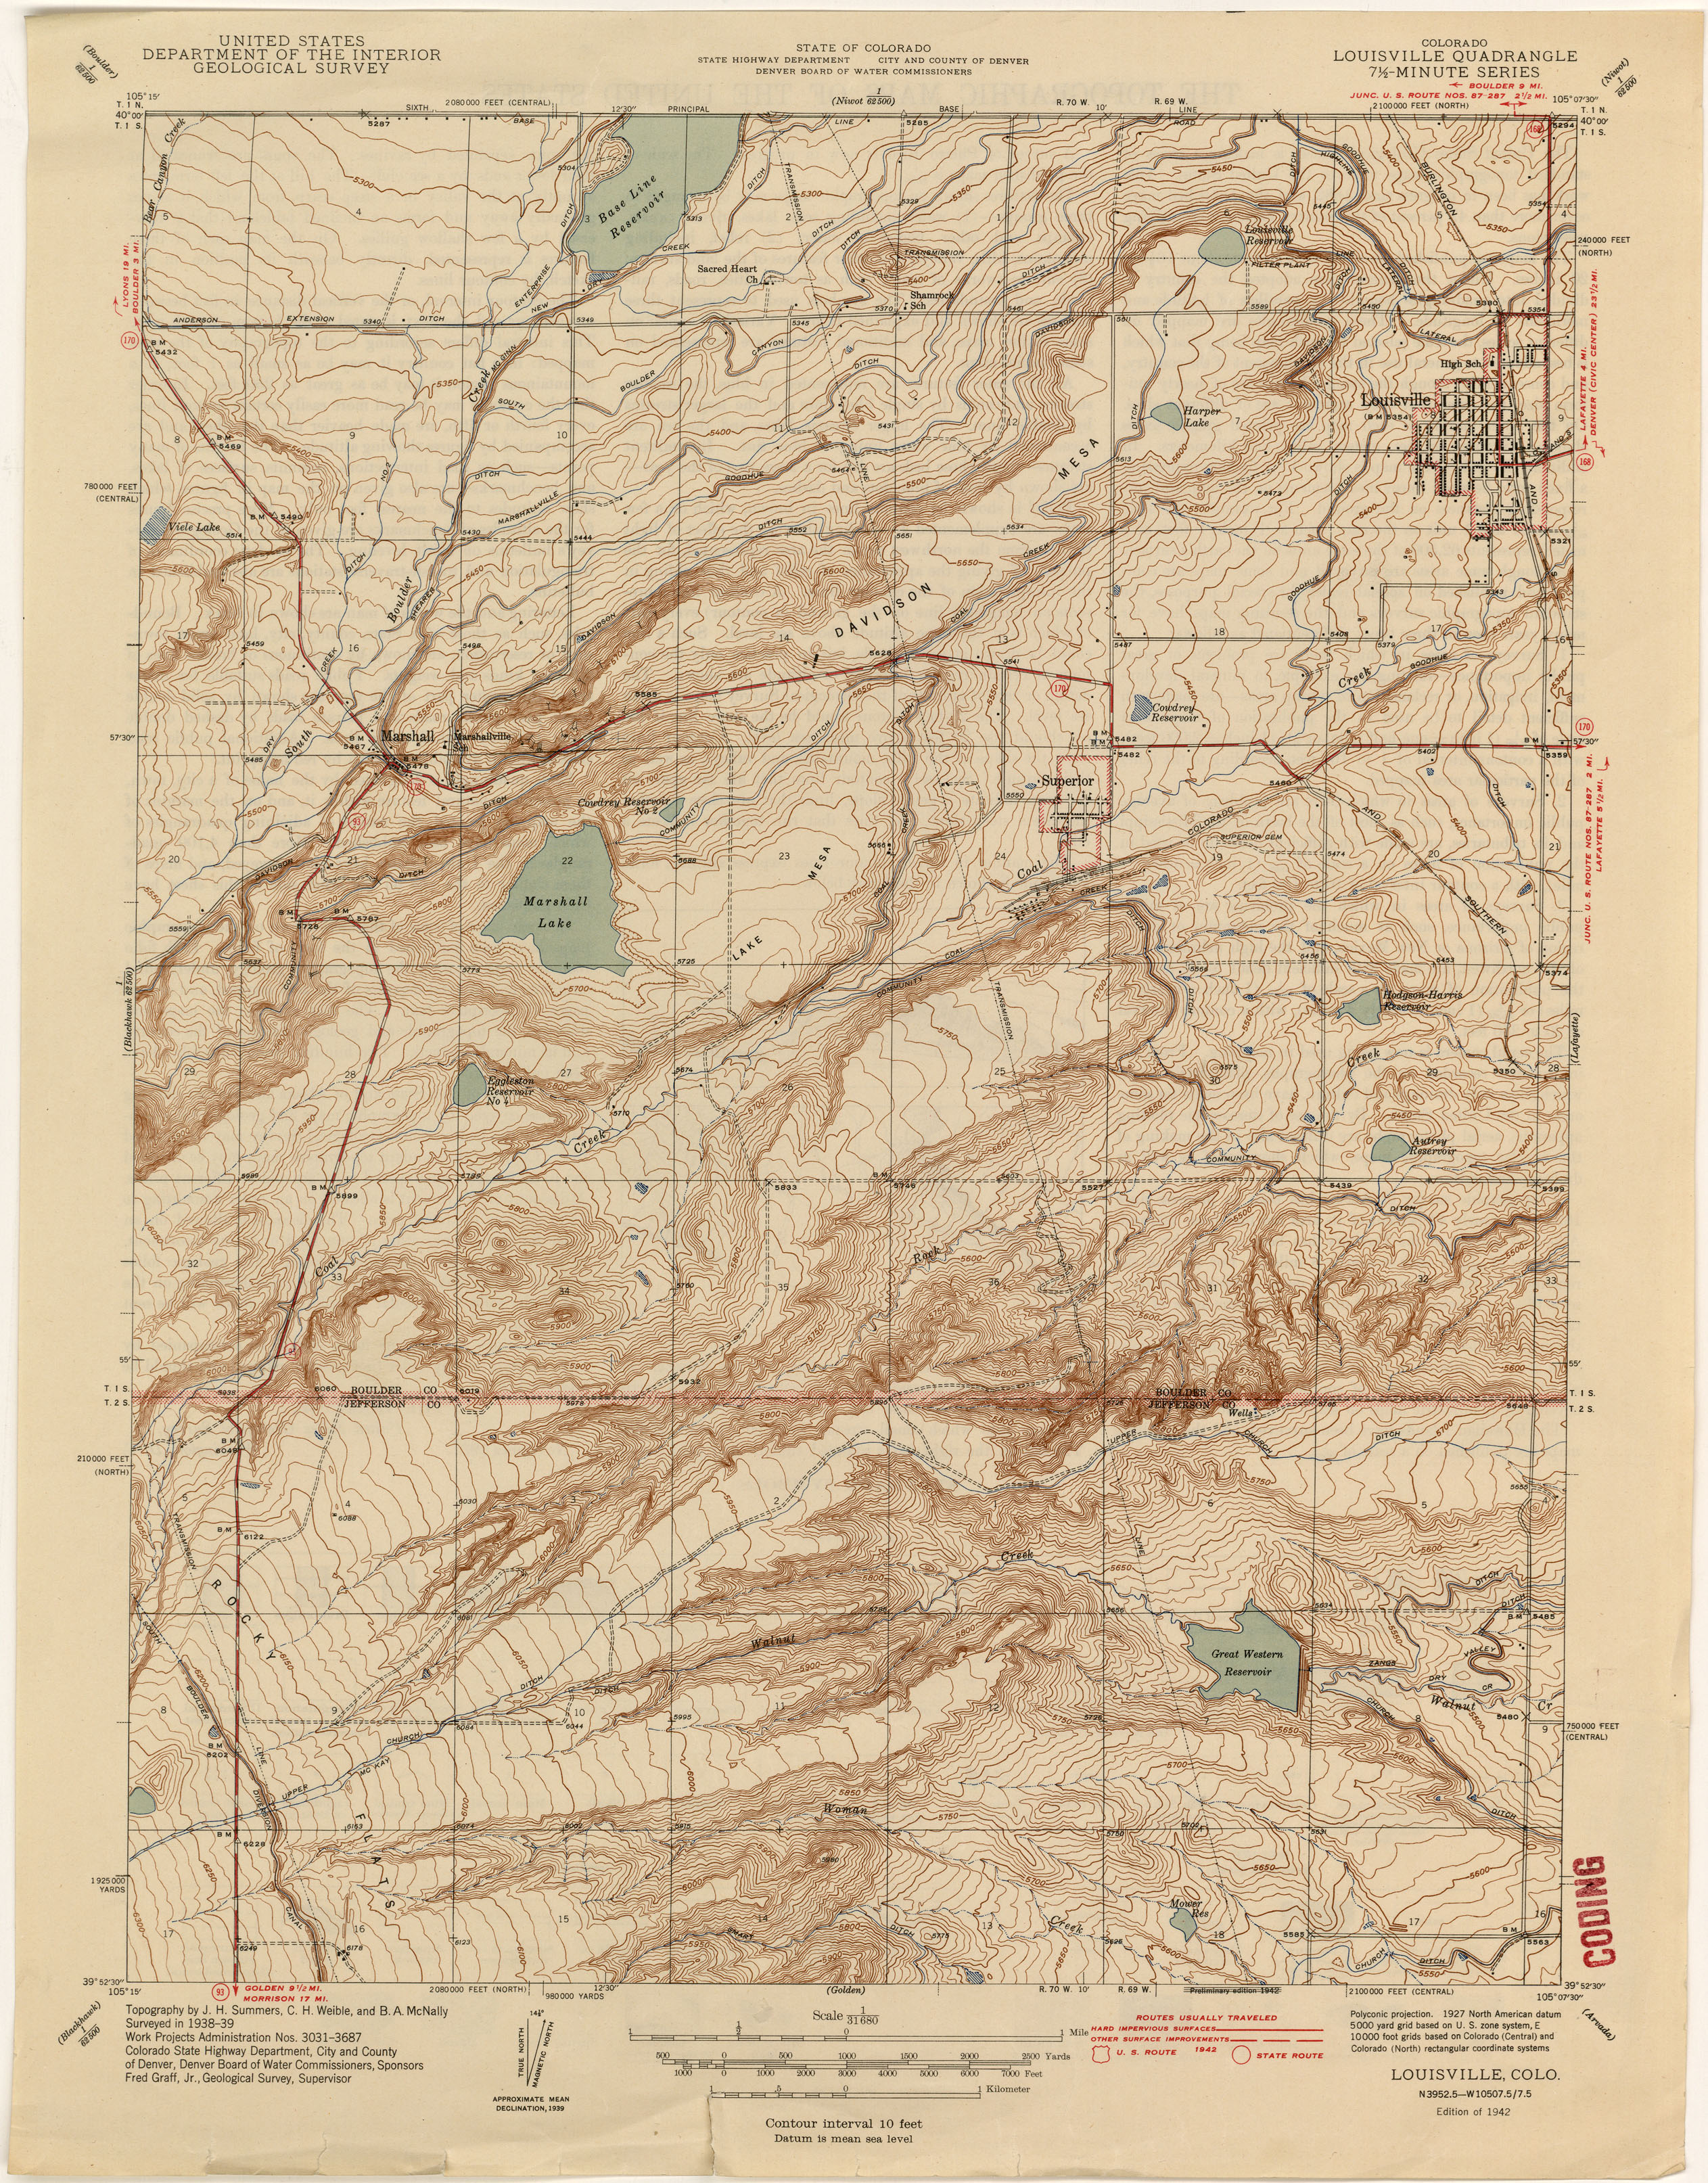 Colorado Historical Topographic Maps Perry Casta eda Map Collection UT Li